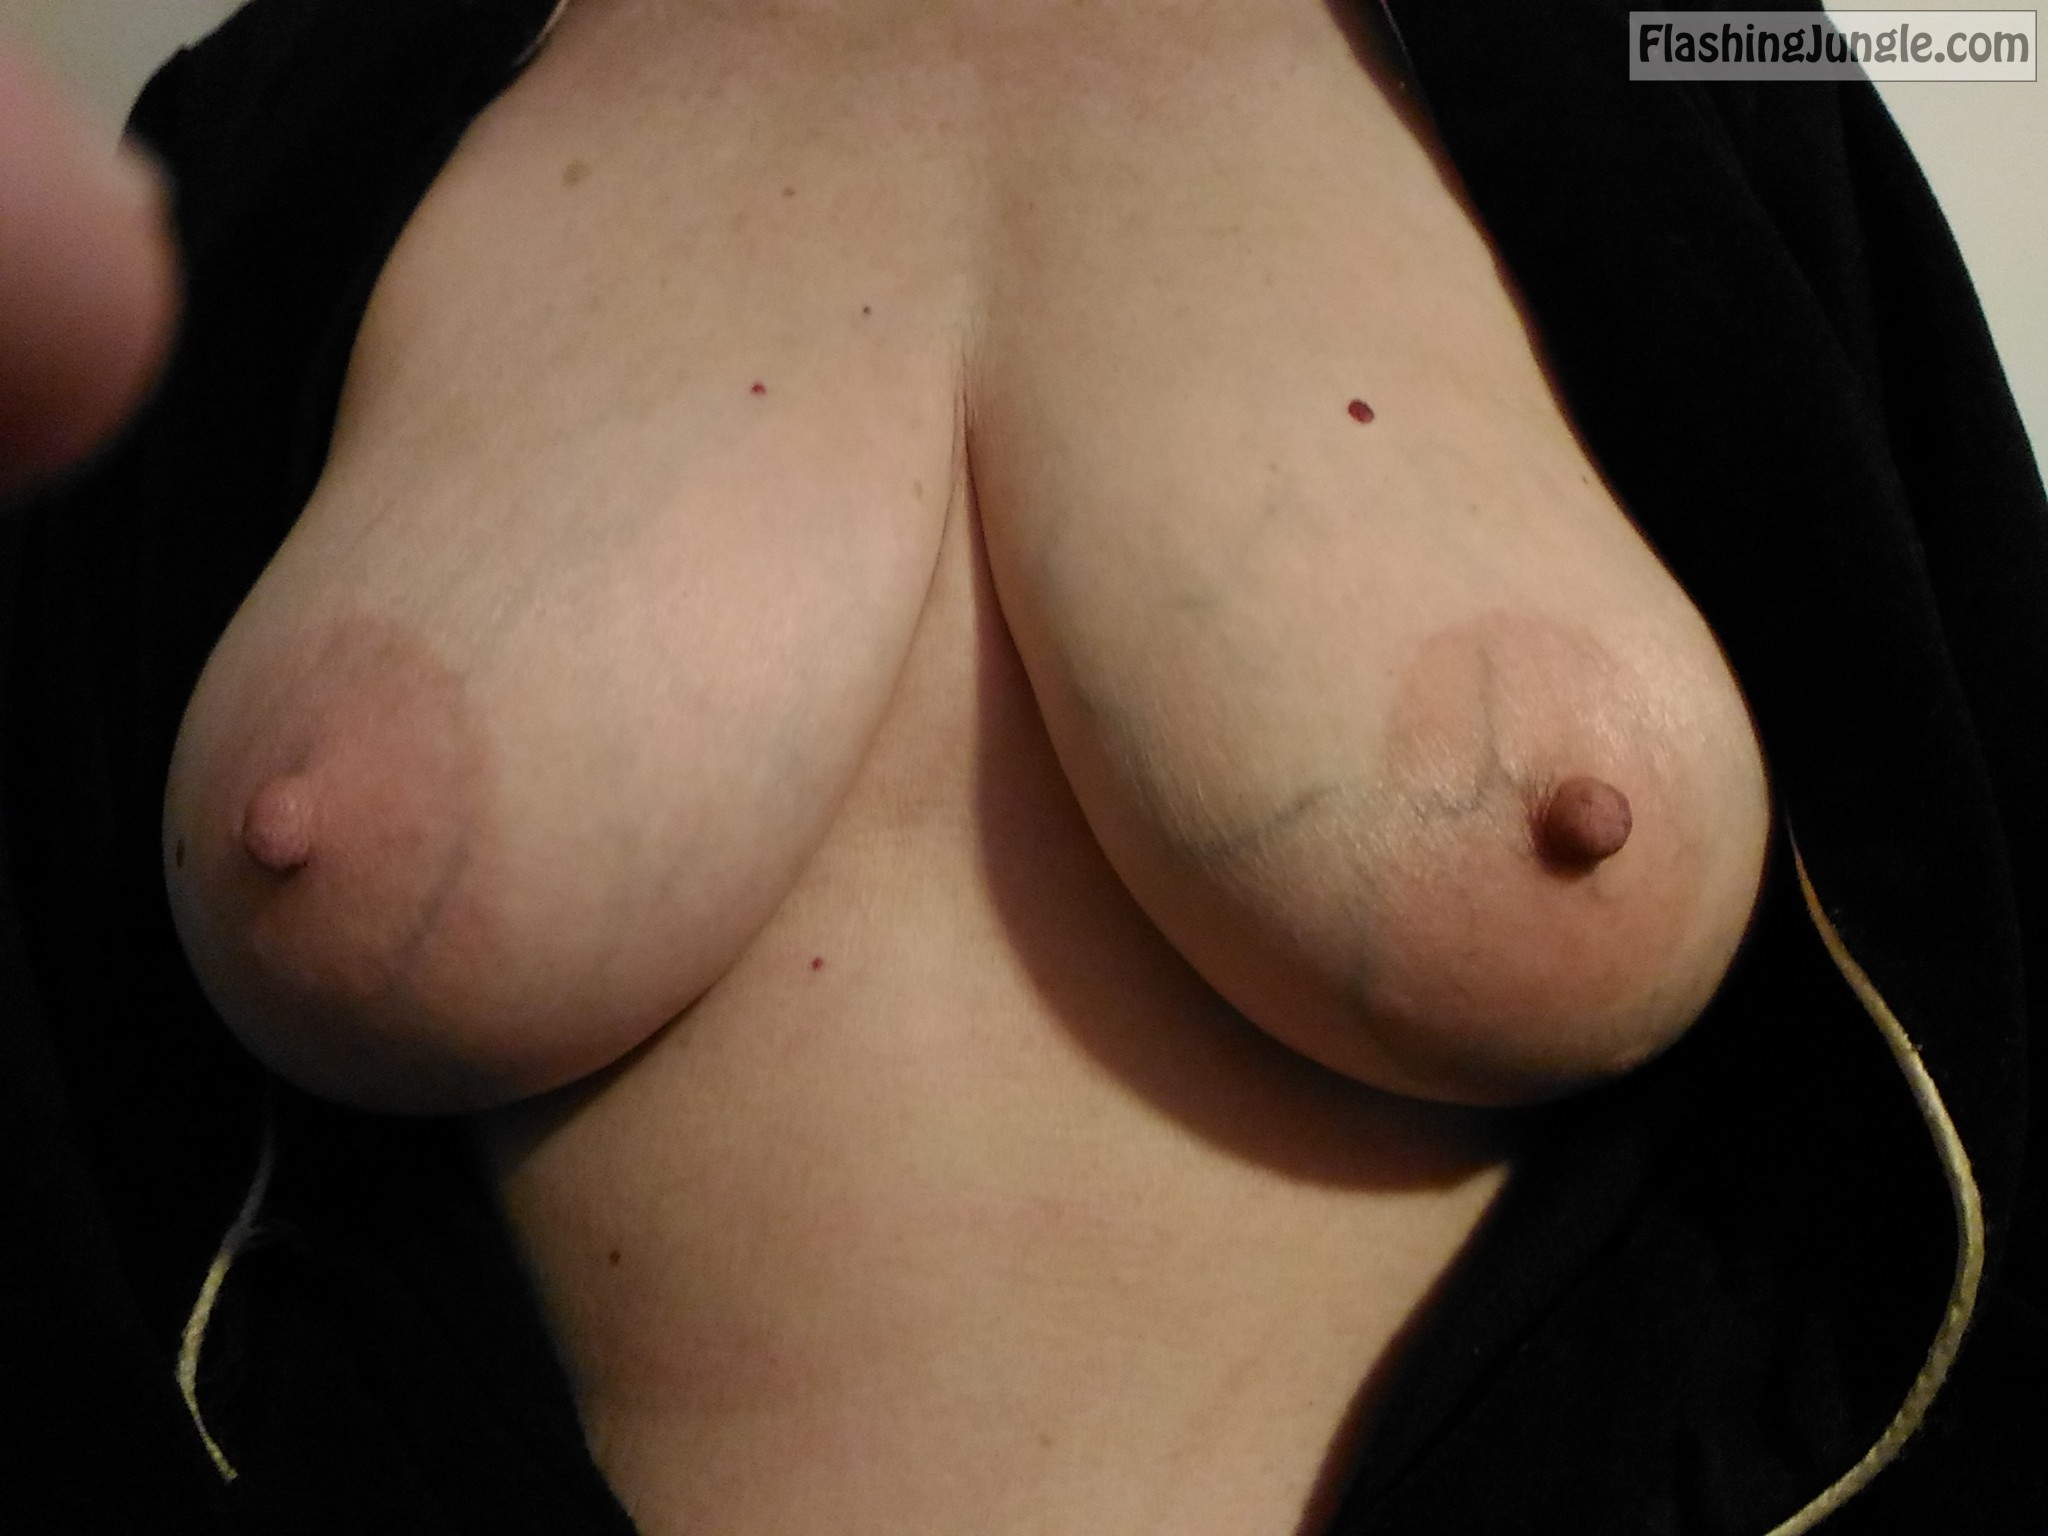 Hard Nipples While Changing Bra Boobs Flash Pics, Real -4261